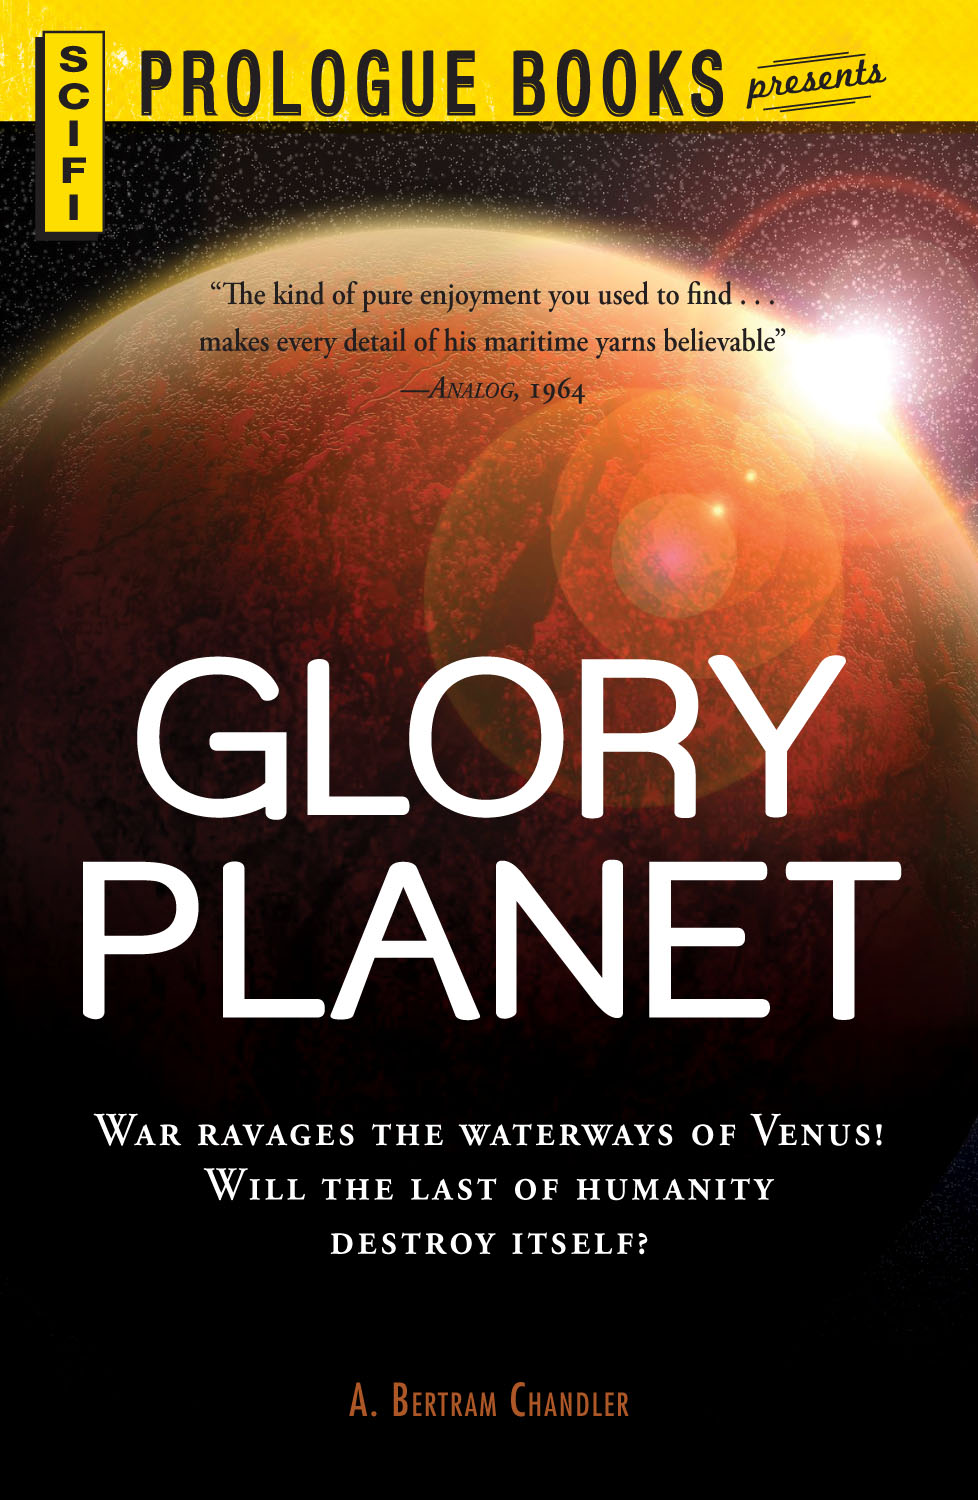 Glory Planet By: A. Bertram Chandler